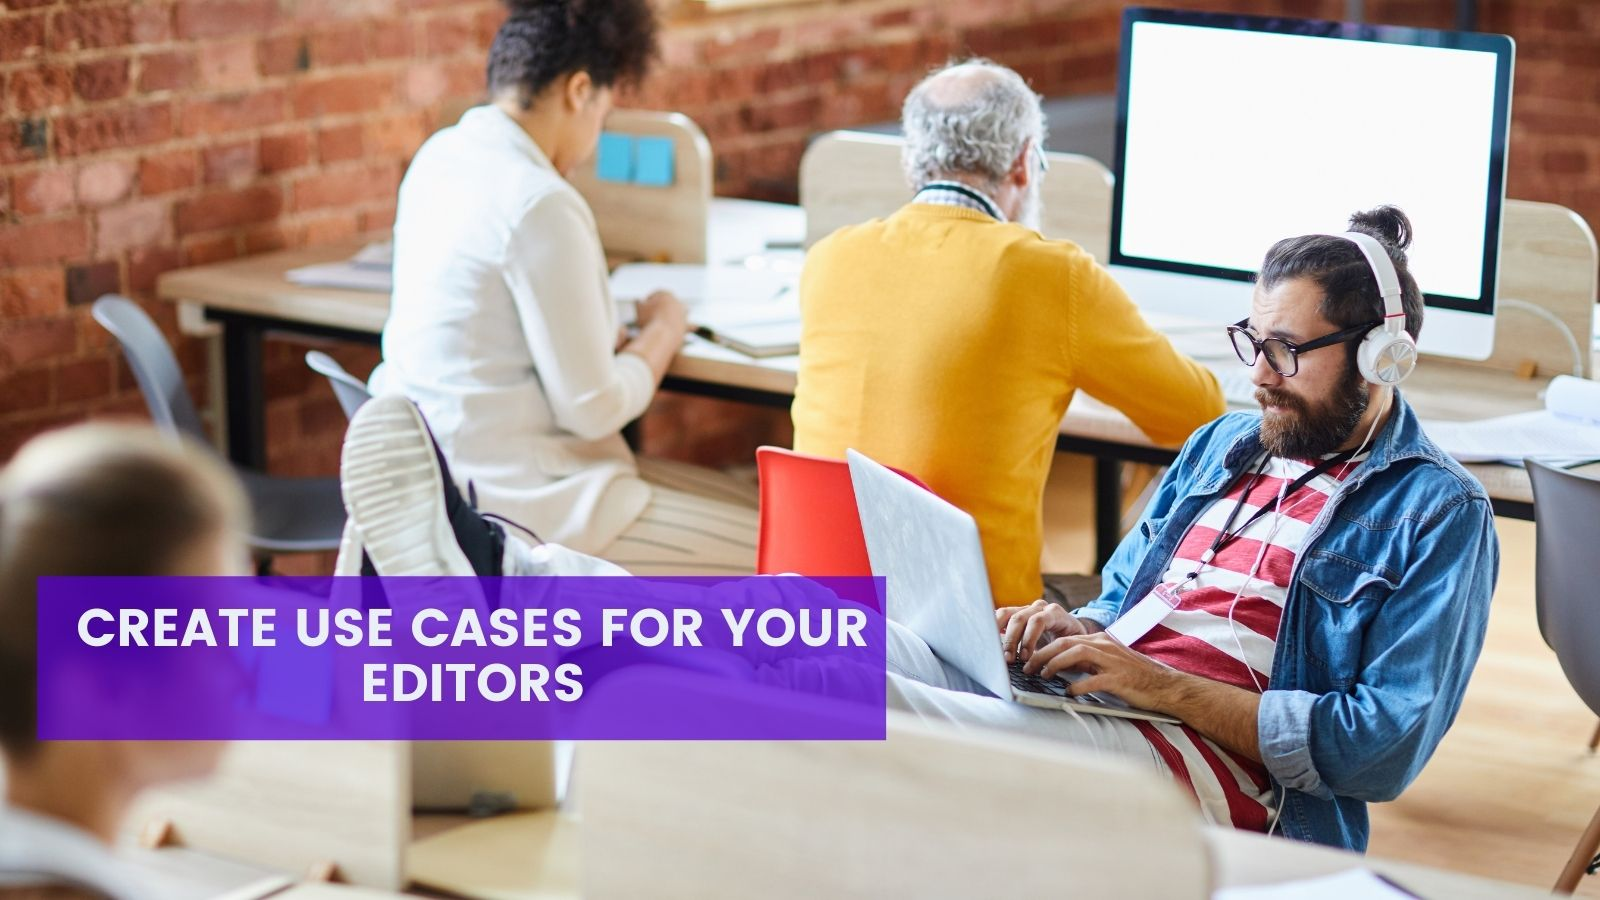 Creating use cases for editors on agilitycms.com